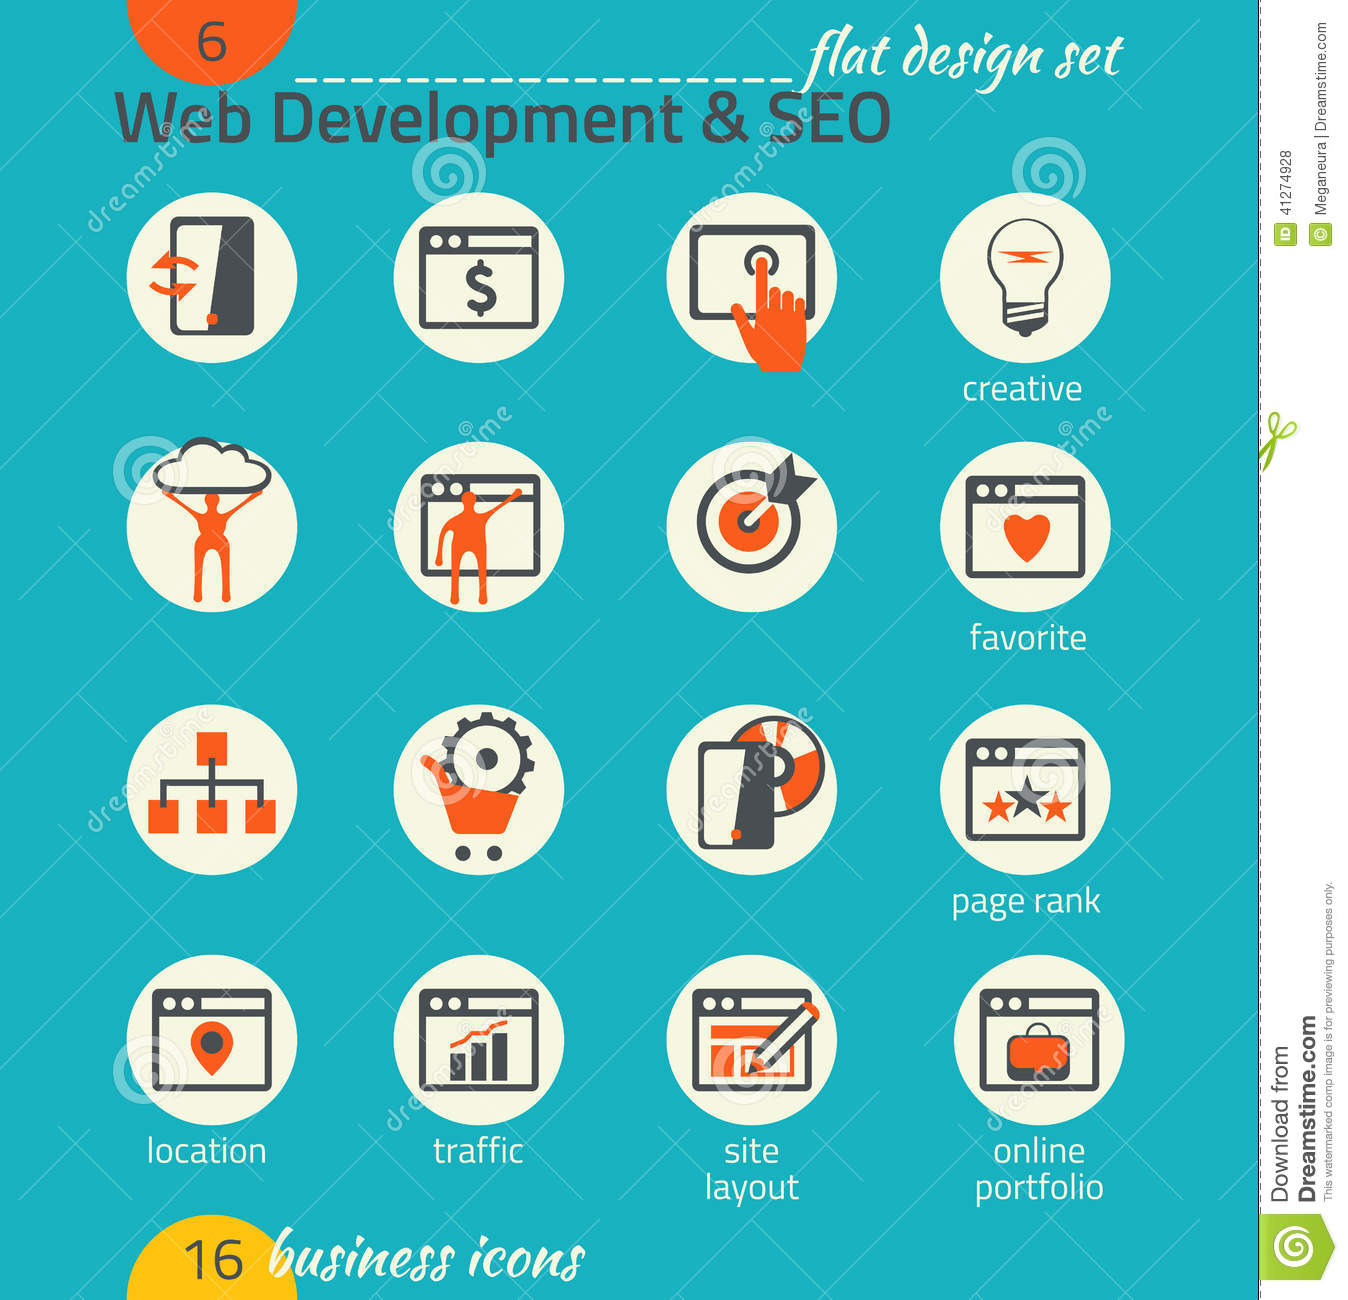 Business icon set software and web development seo marketing business icon set software and web development seo marketing altavistaventures Images